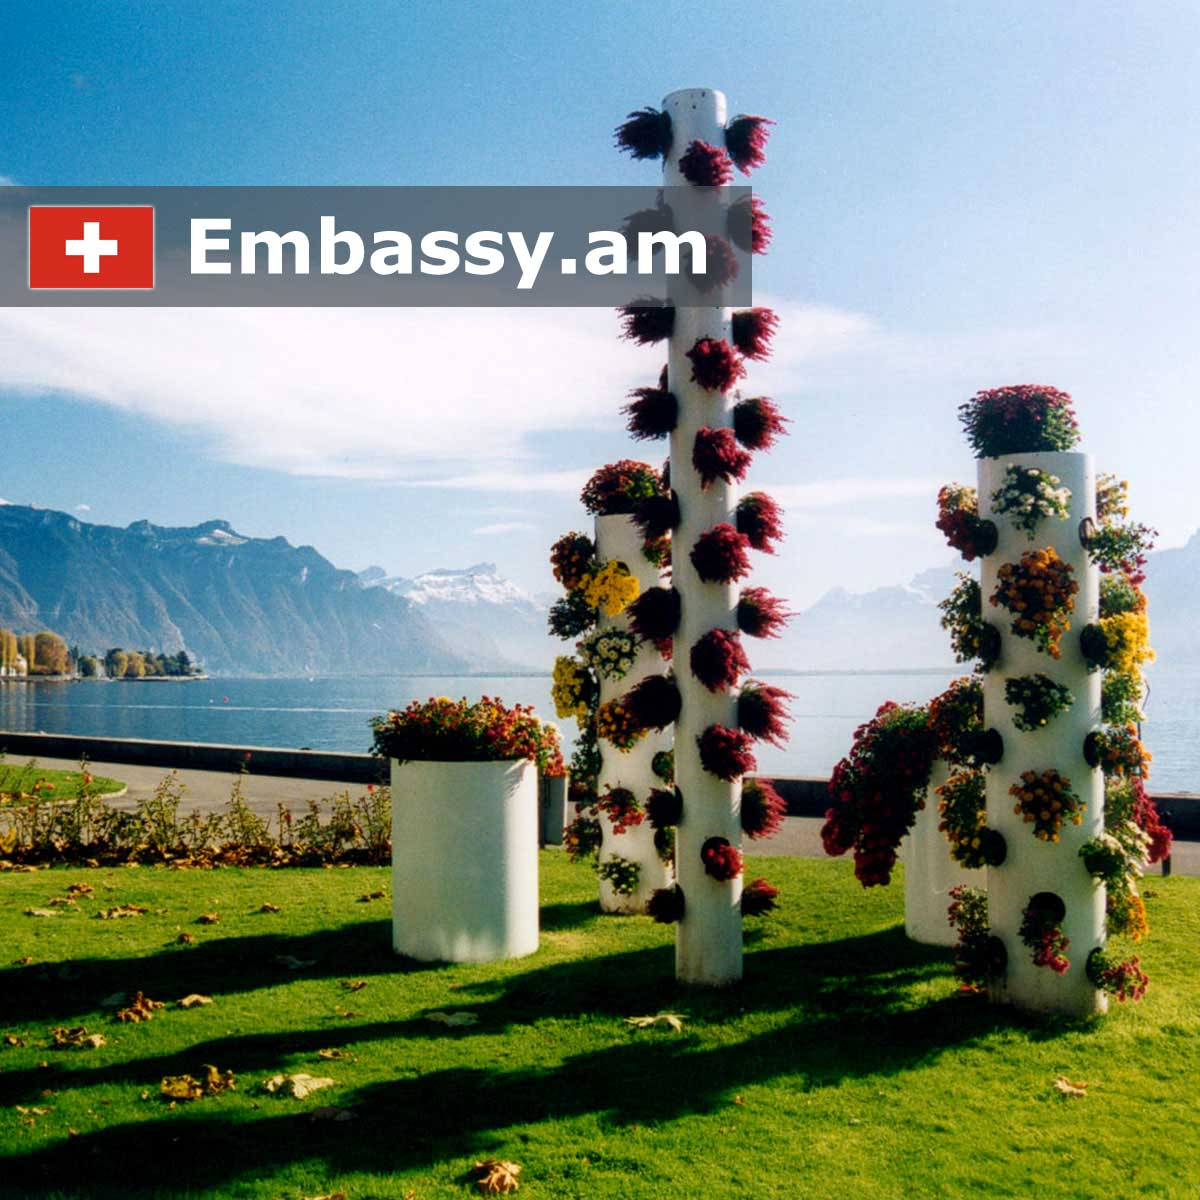 Lausanne - Hotels in Switzerland - Embassy.am